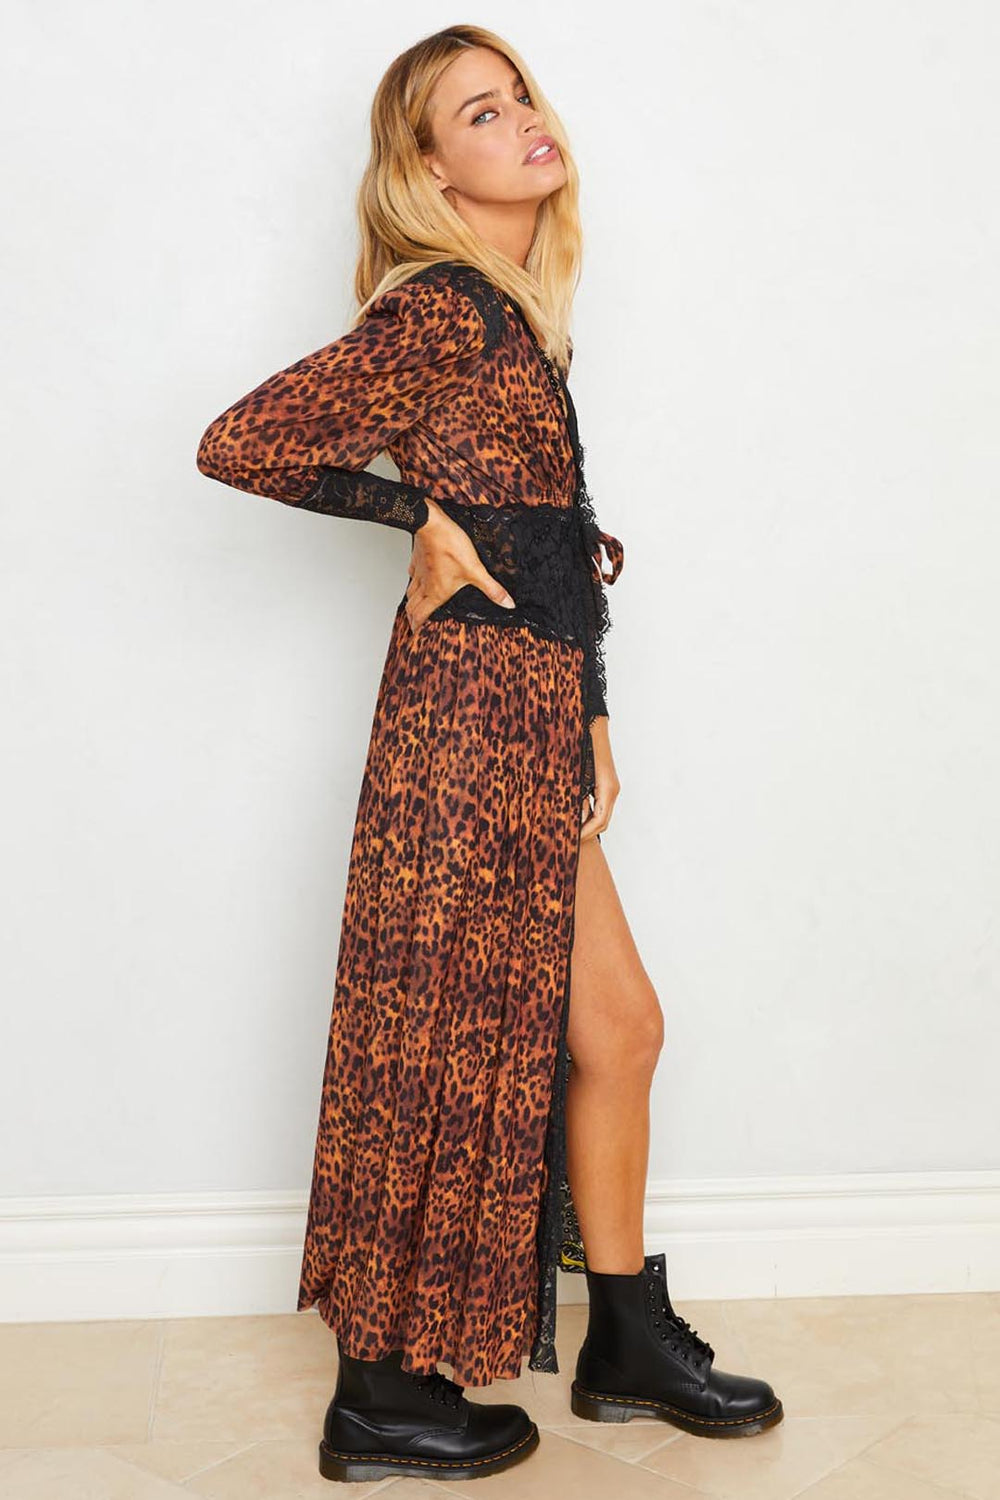 Leopard print long lace robe with a tie front. Machine washable.